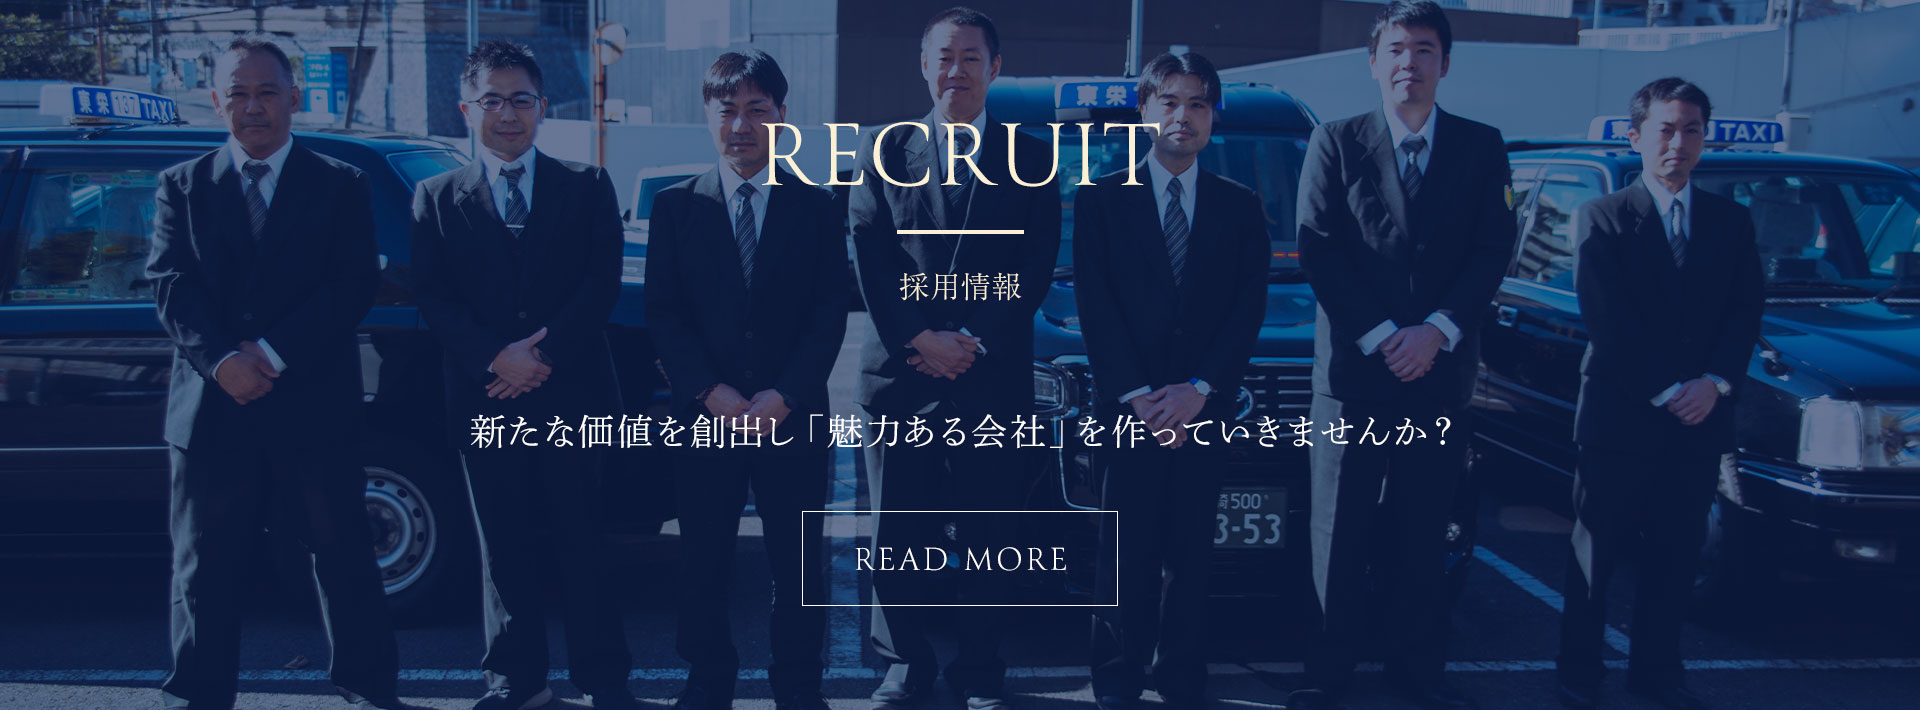 RECRUIT 代表挨拶やサービス同様、採用情報